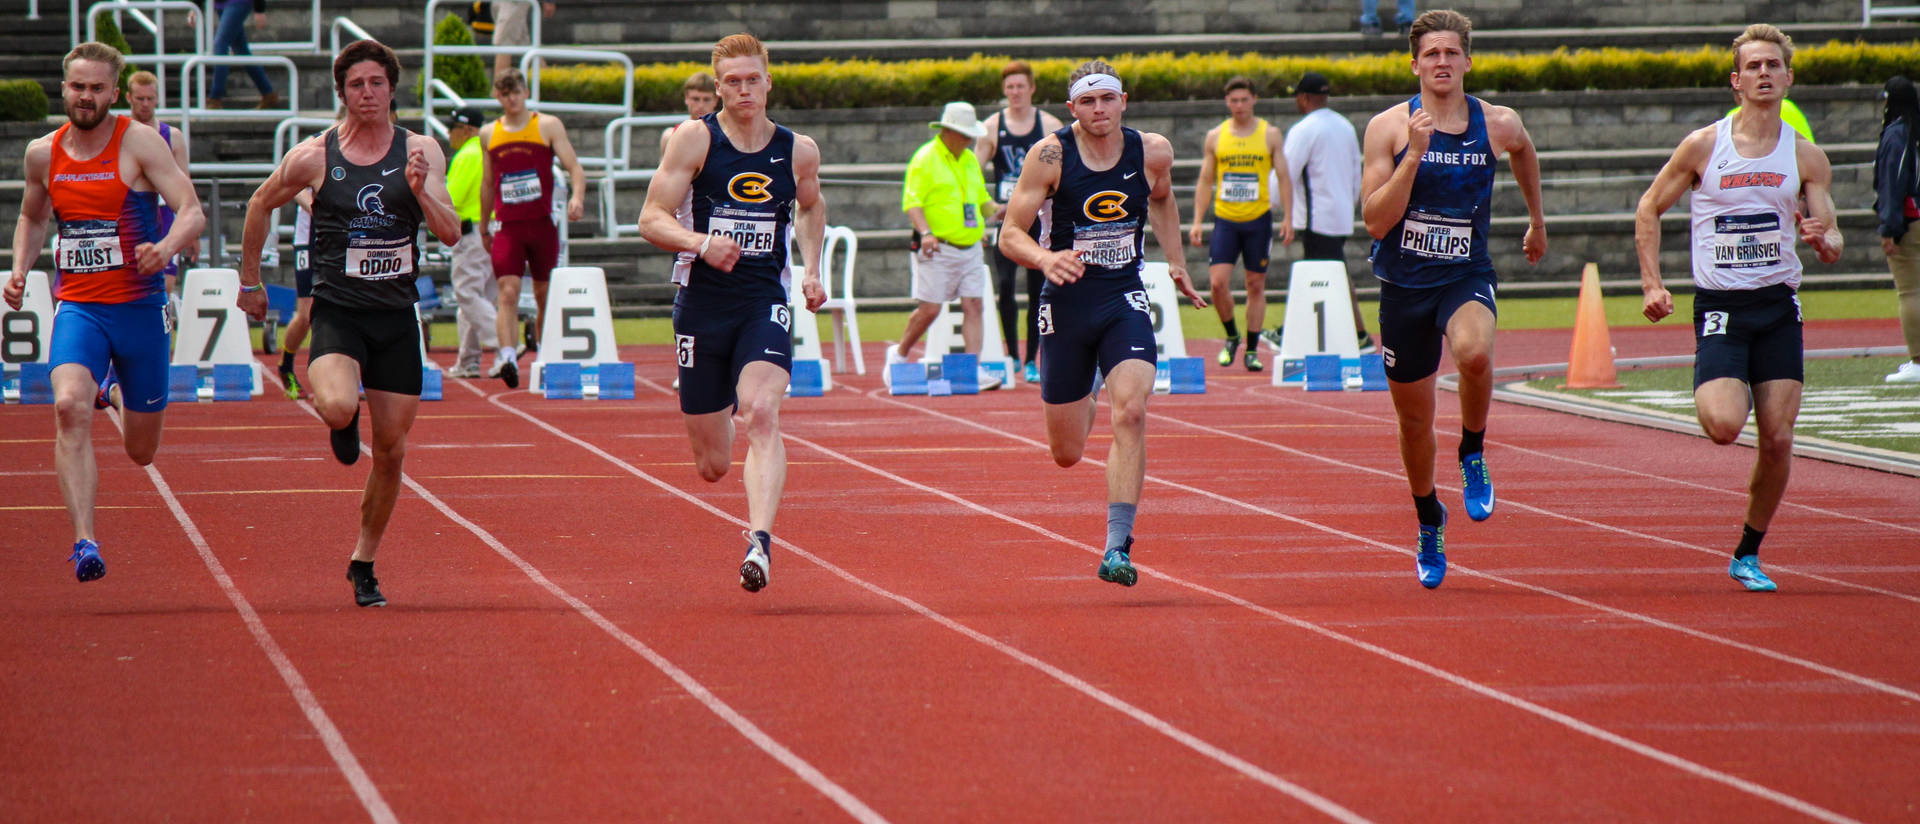 The Blugold men's track and field team captured the program's first NCAA Division III Outdoor Championship in May. (Photo by Dan Schwamberger)